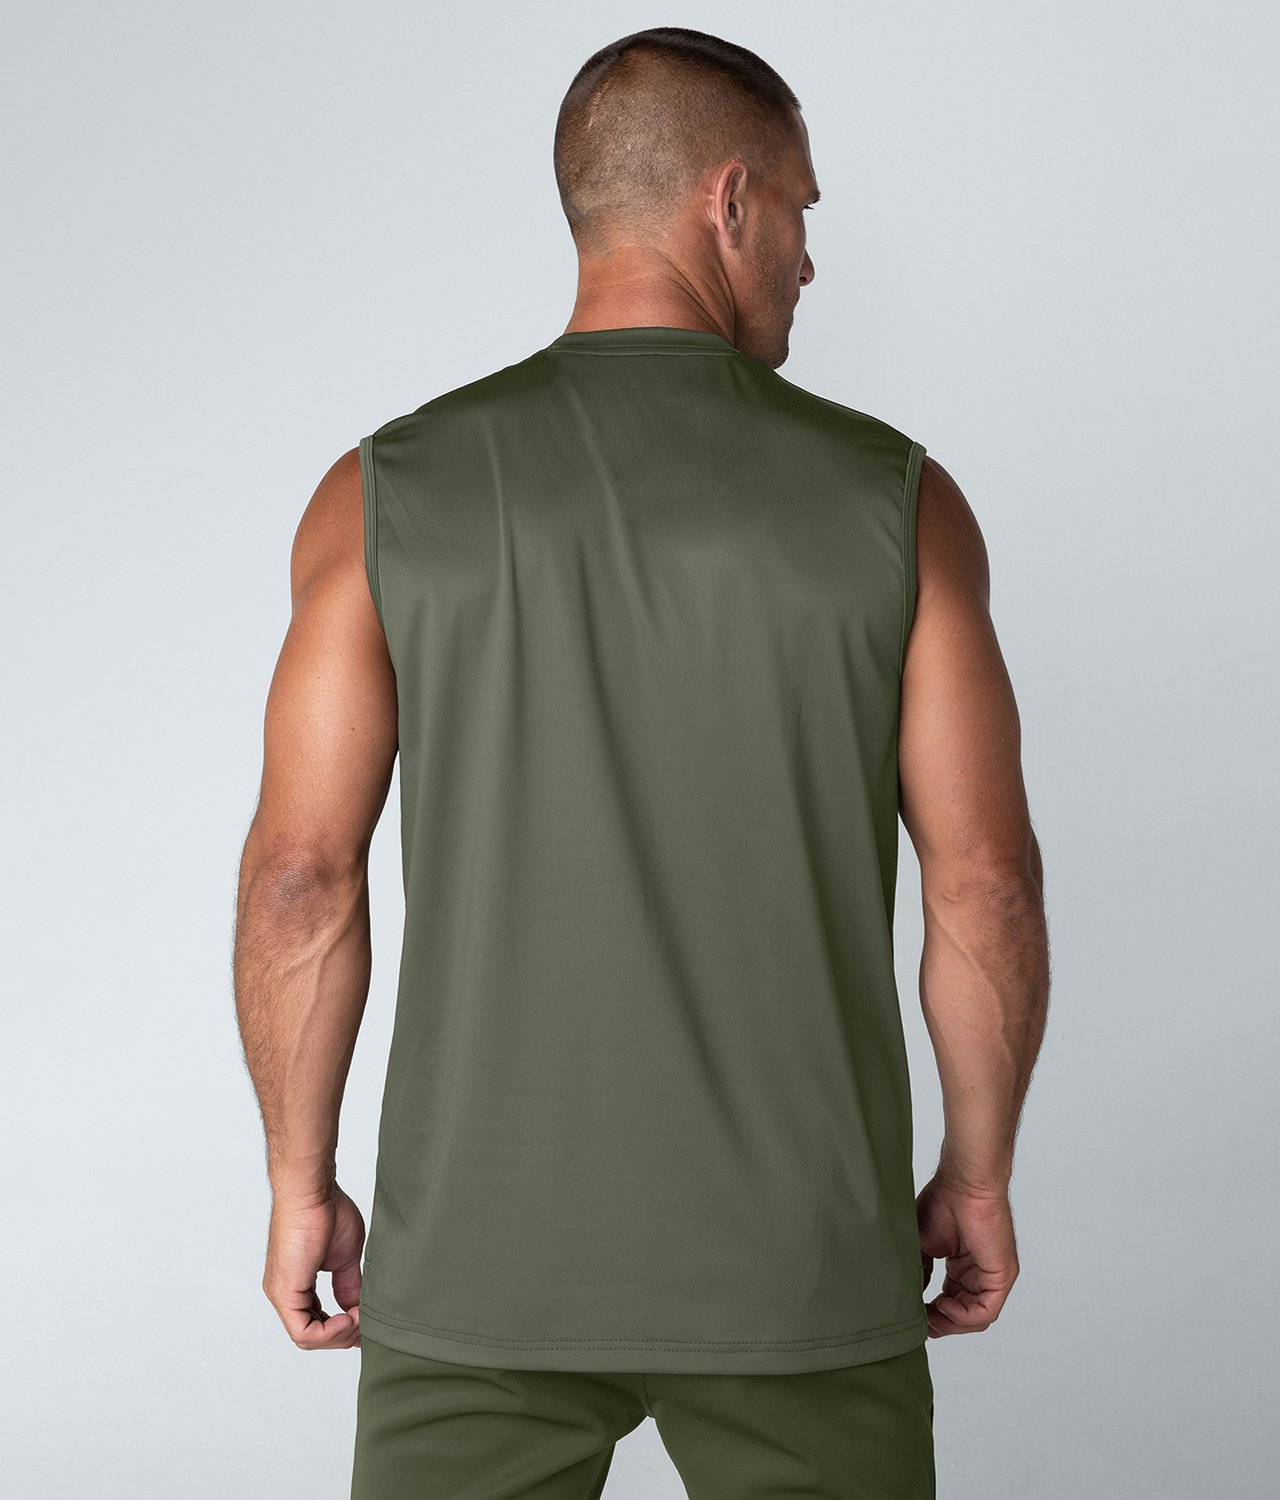 Born Tough United Kingdom Momentum Extremely Soft Sleeveless Fitted Tee Gym Workout Shirt For Men Military Green